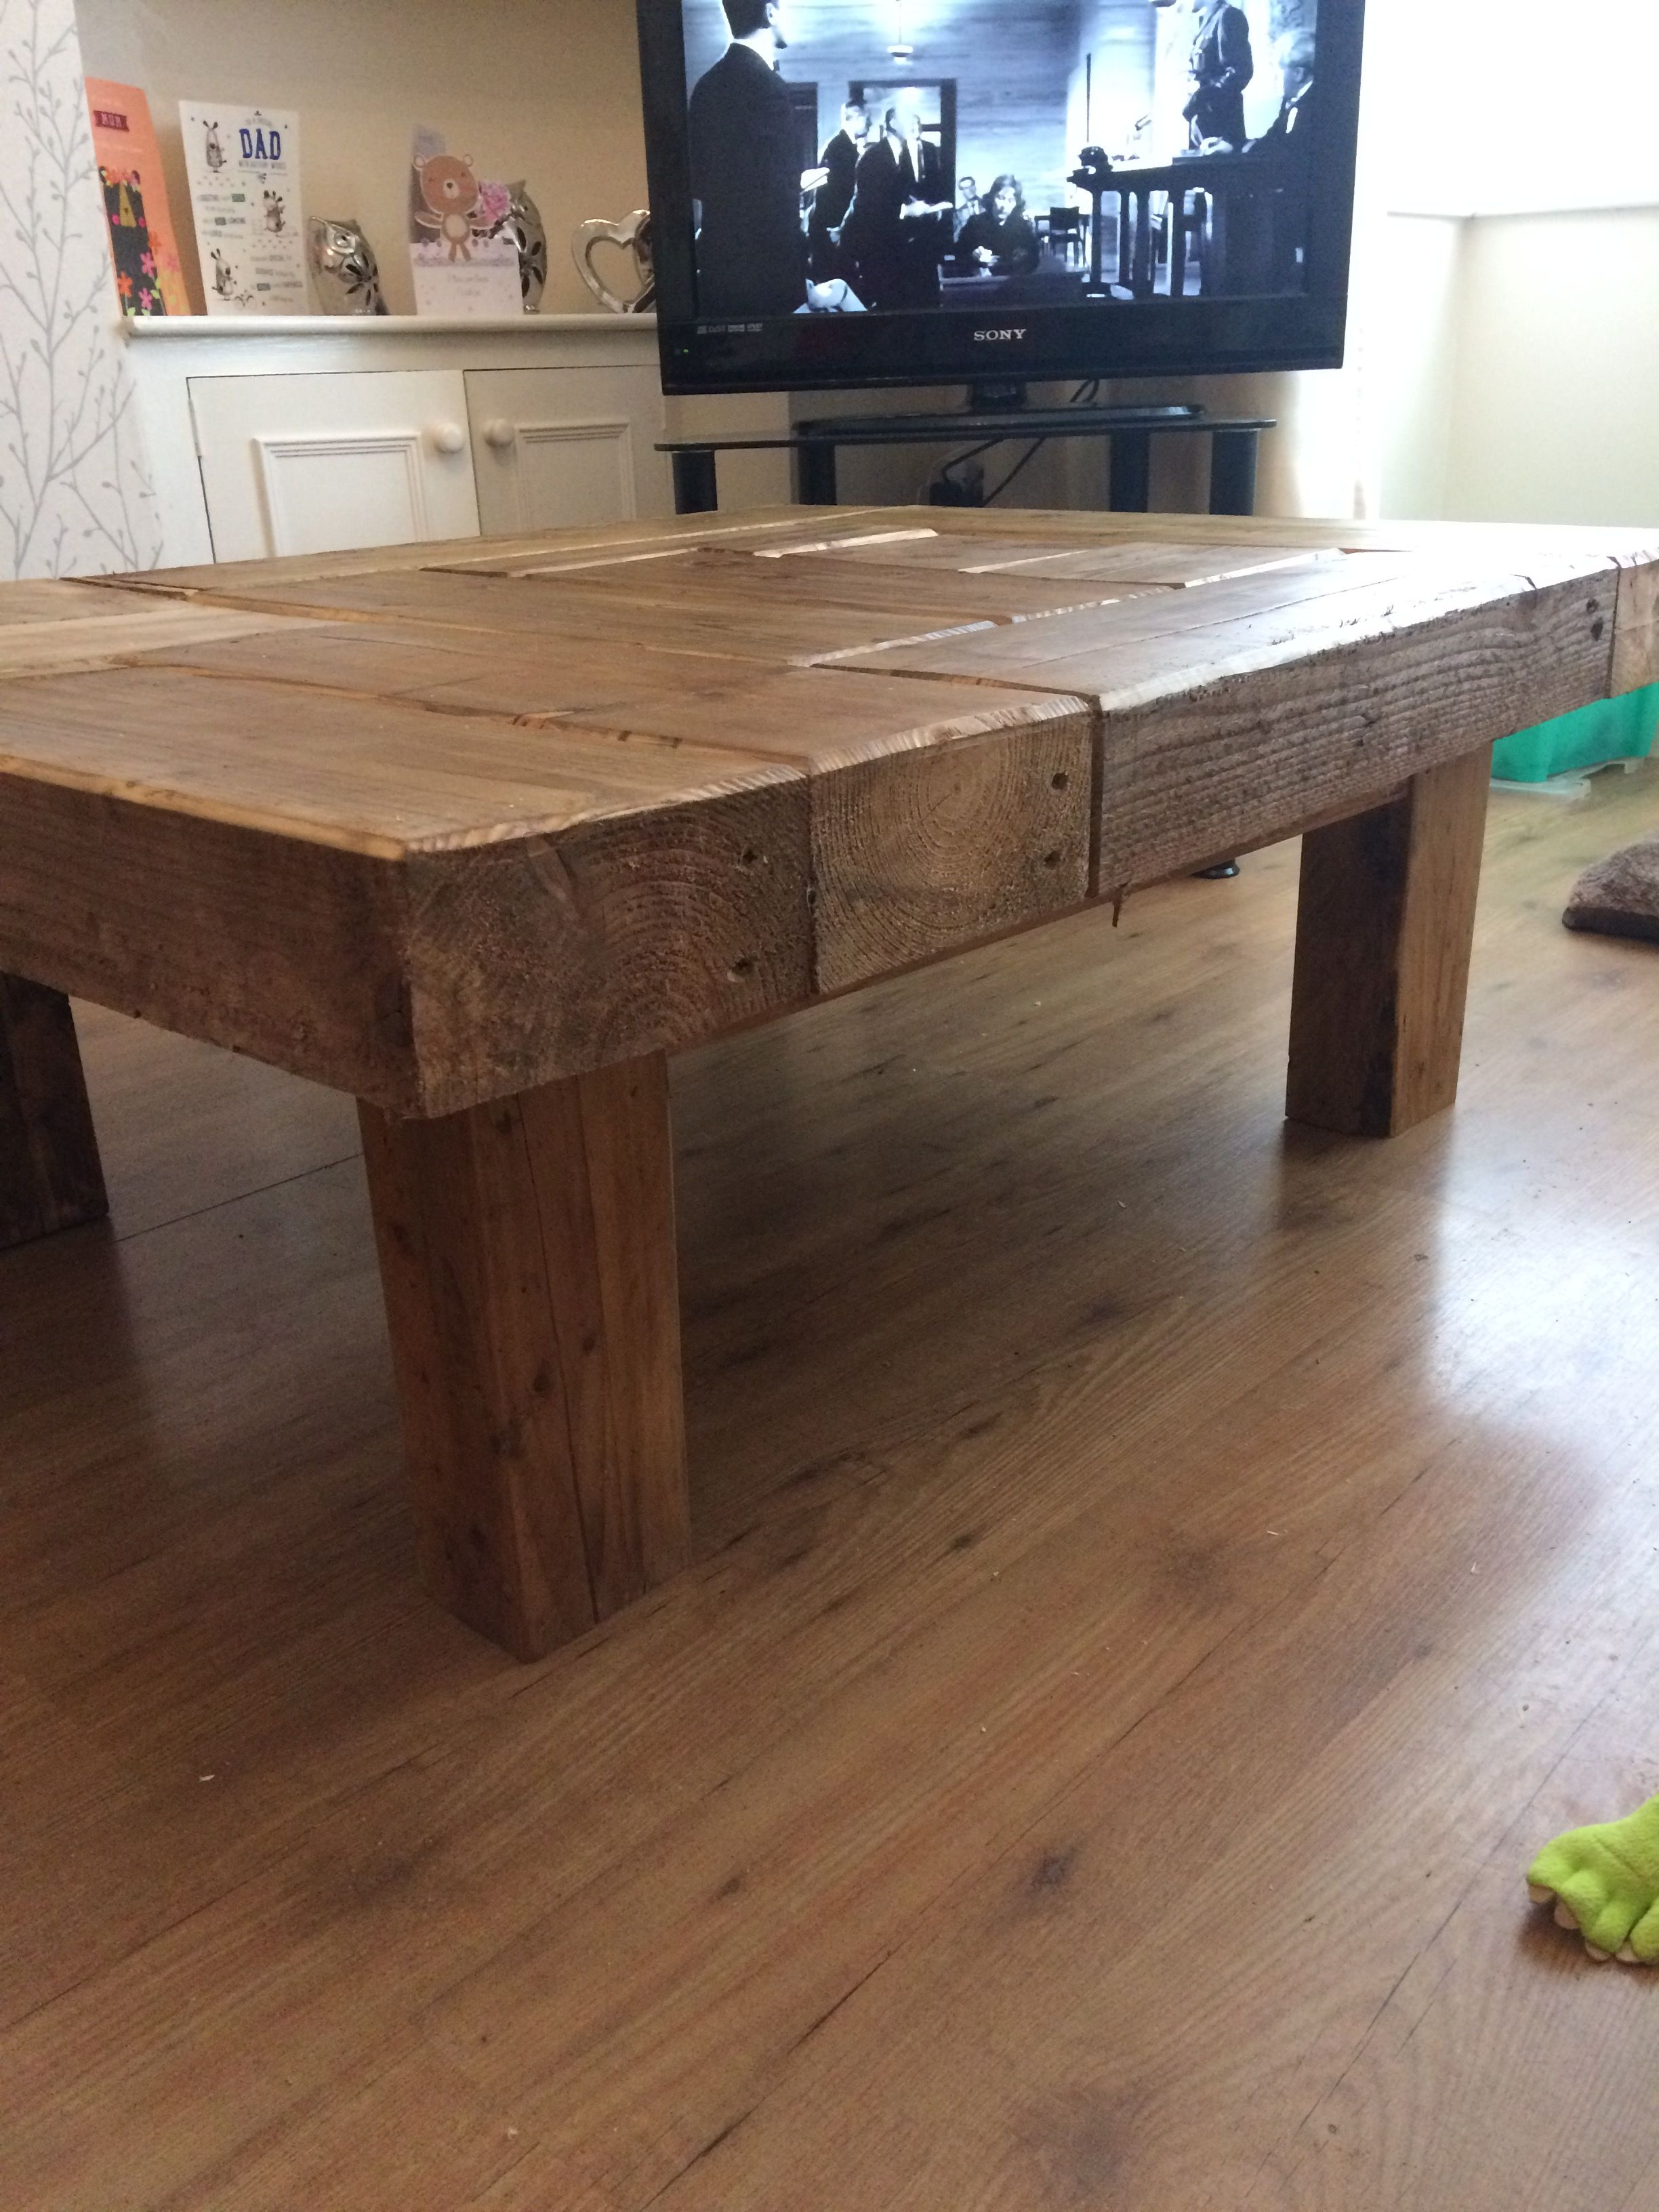 Pin by The wooden restore on one | Table, Decor, Furniture